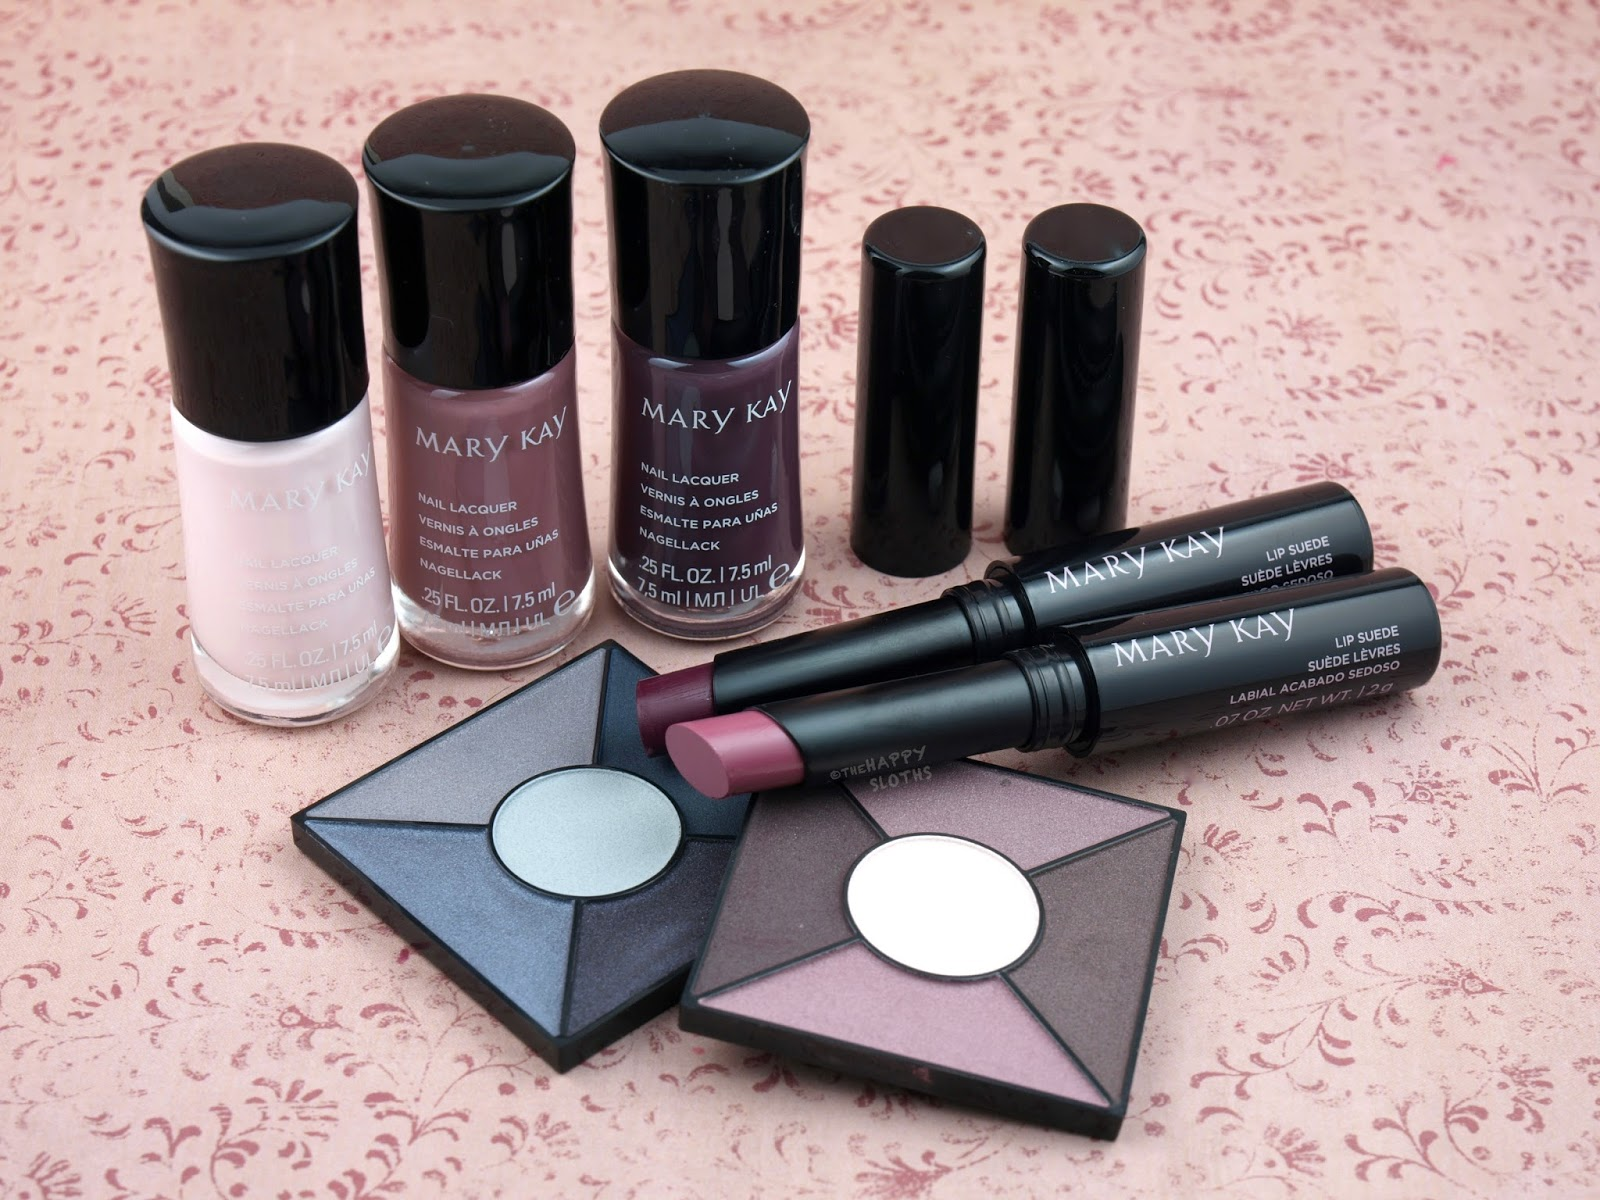 Mary Kay Fall 2017 Color Collection: Review and Swatches